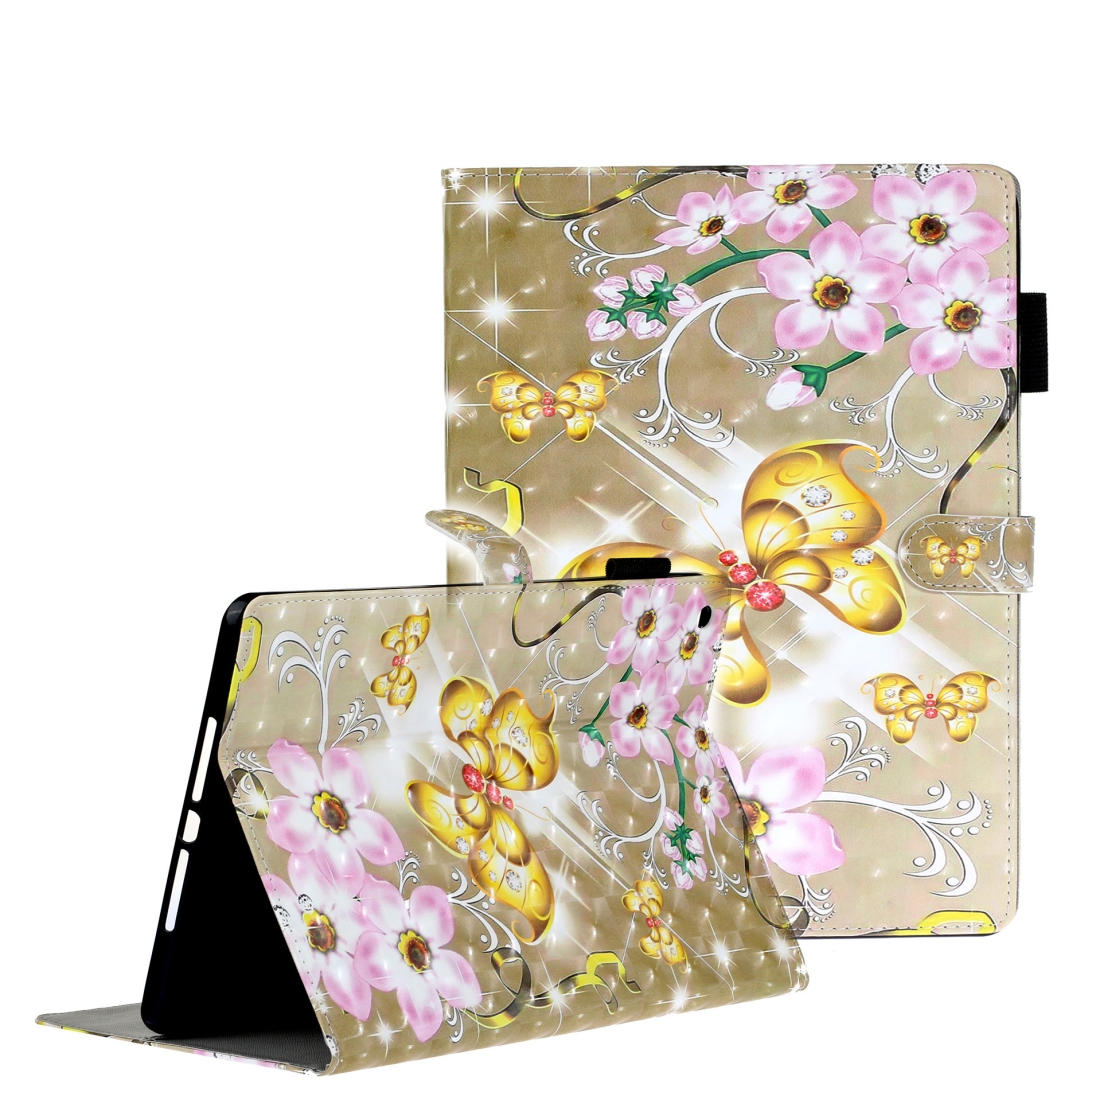 iPad 7th Generation Case (10.2 Inch) 3D Embossing Leather Case & Slim Profile (Gold Butterfly)